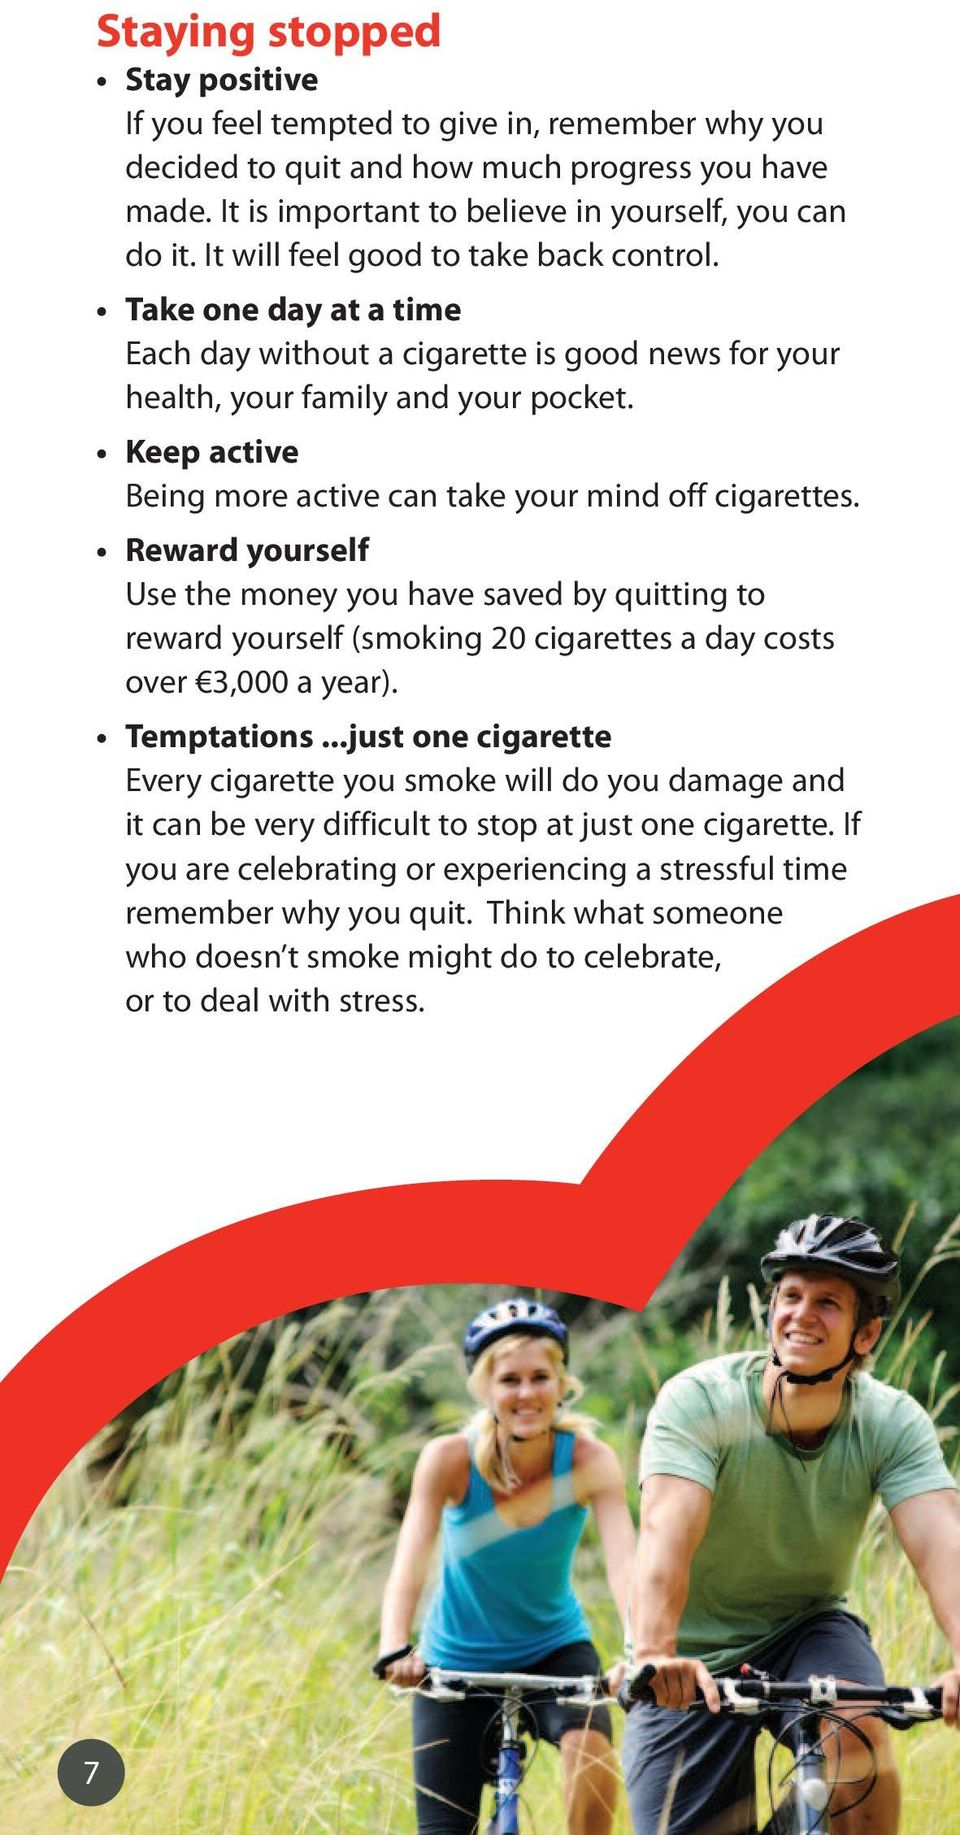 Keep active Being more active can take your mind off cigarettes. Reward yourself Use the money you have saved by quitting to reward yourself (smoking 20 cigarettes a day costs over 3,000 a year).